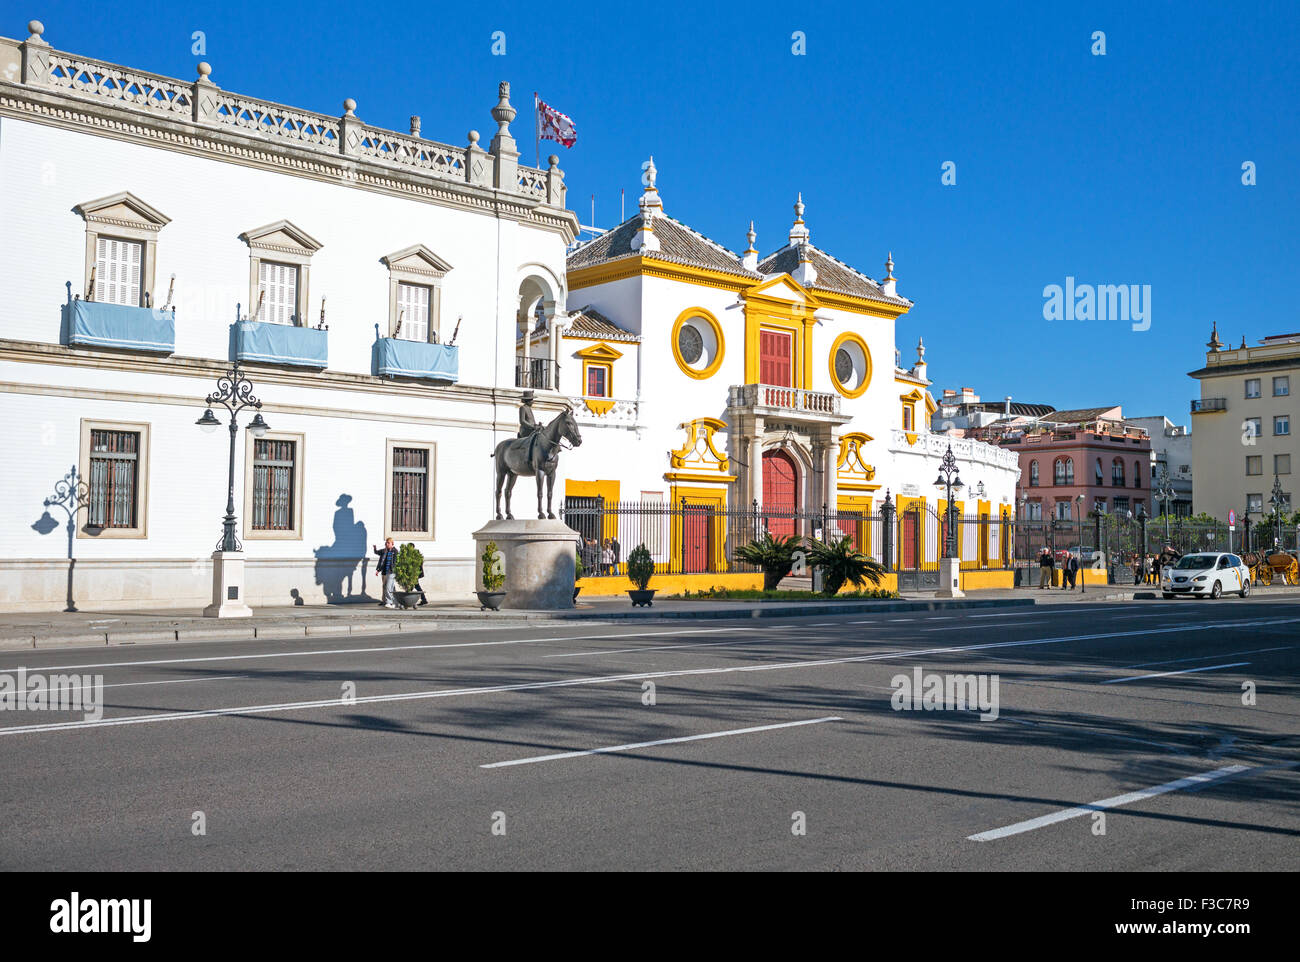 Spain, Andalusia, Seville, the Plaza de Toros (Bullring) and Real Maestranza de Caballeria Museum - Stock Image